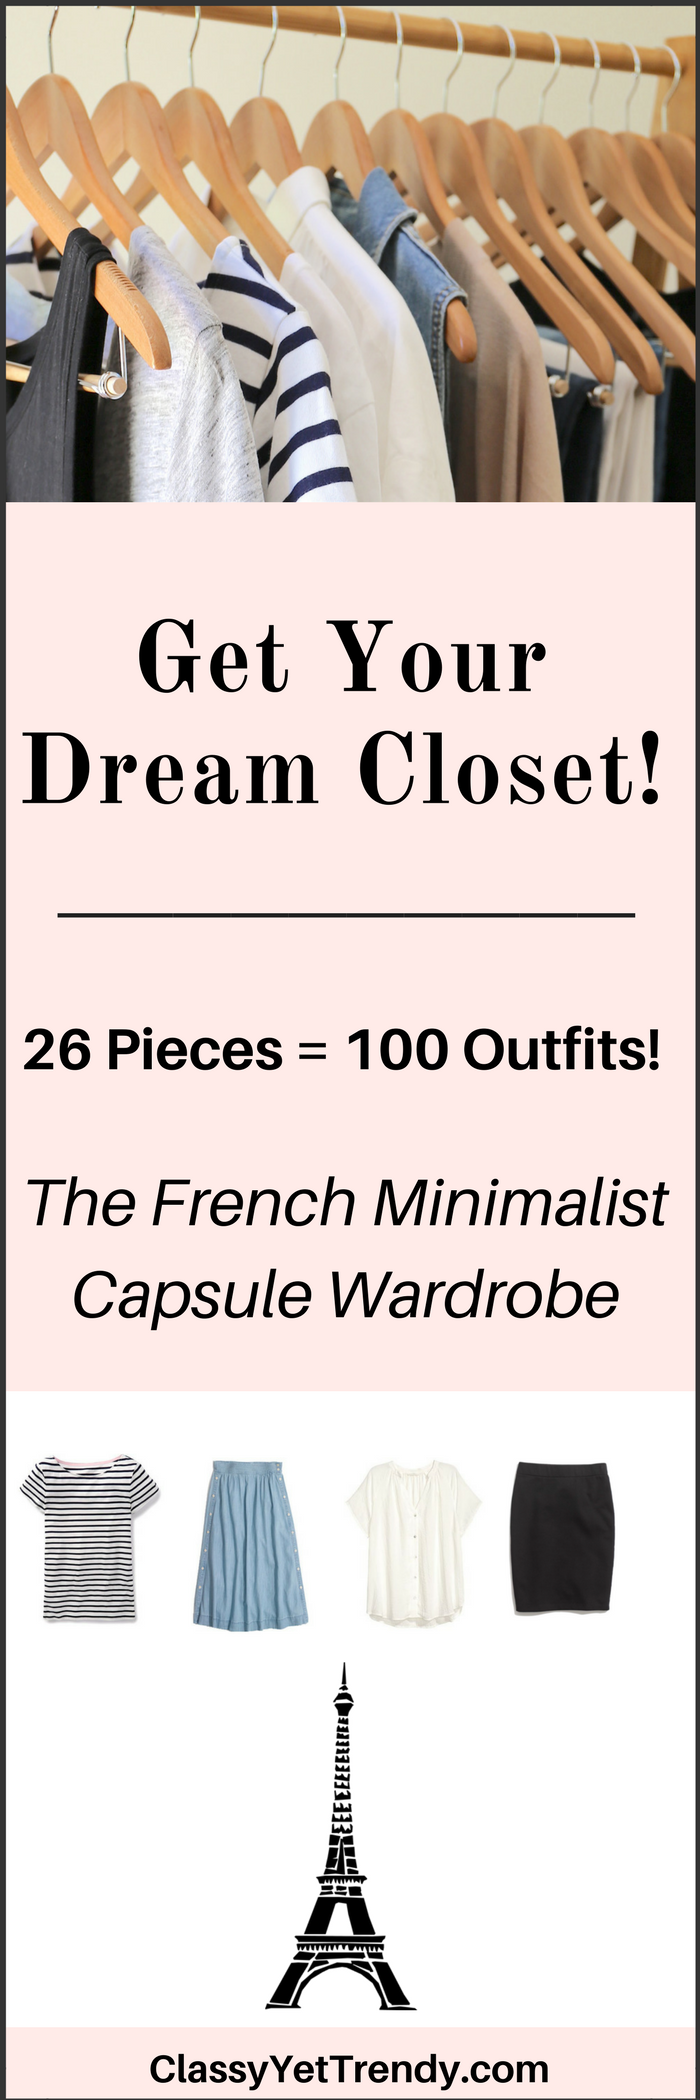 French Minimalist Summer 2017 Capsule Wardrobe e-book